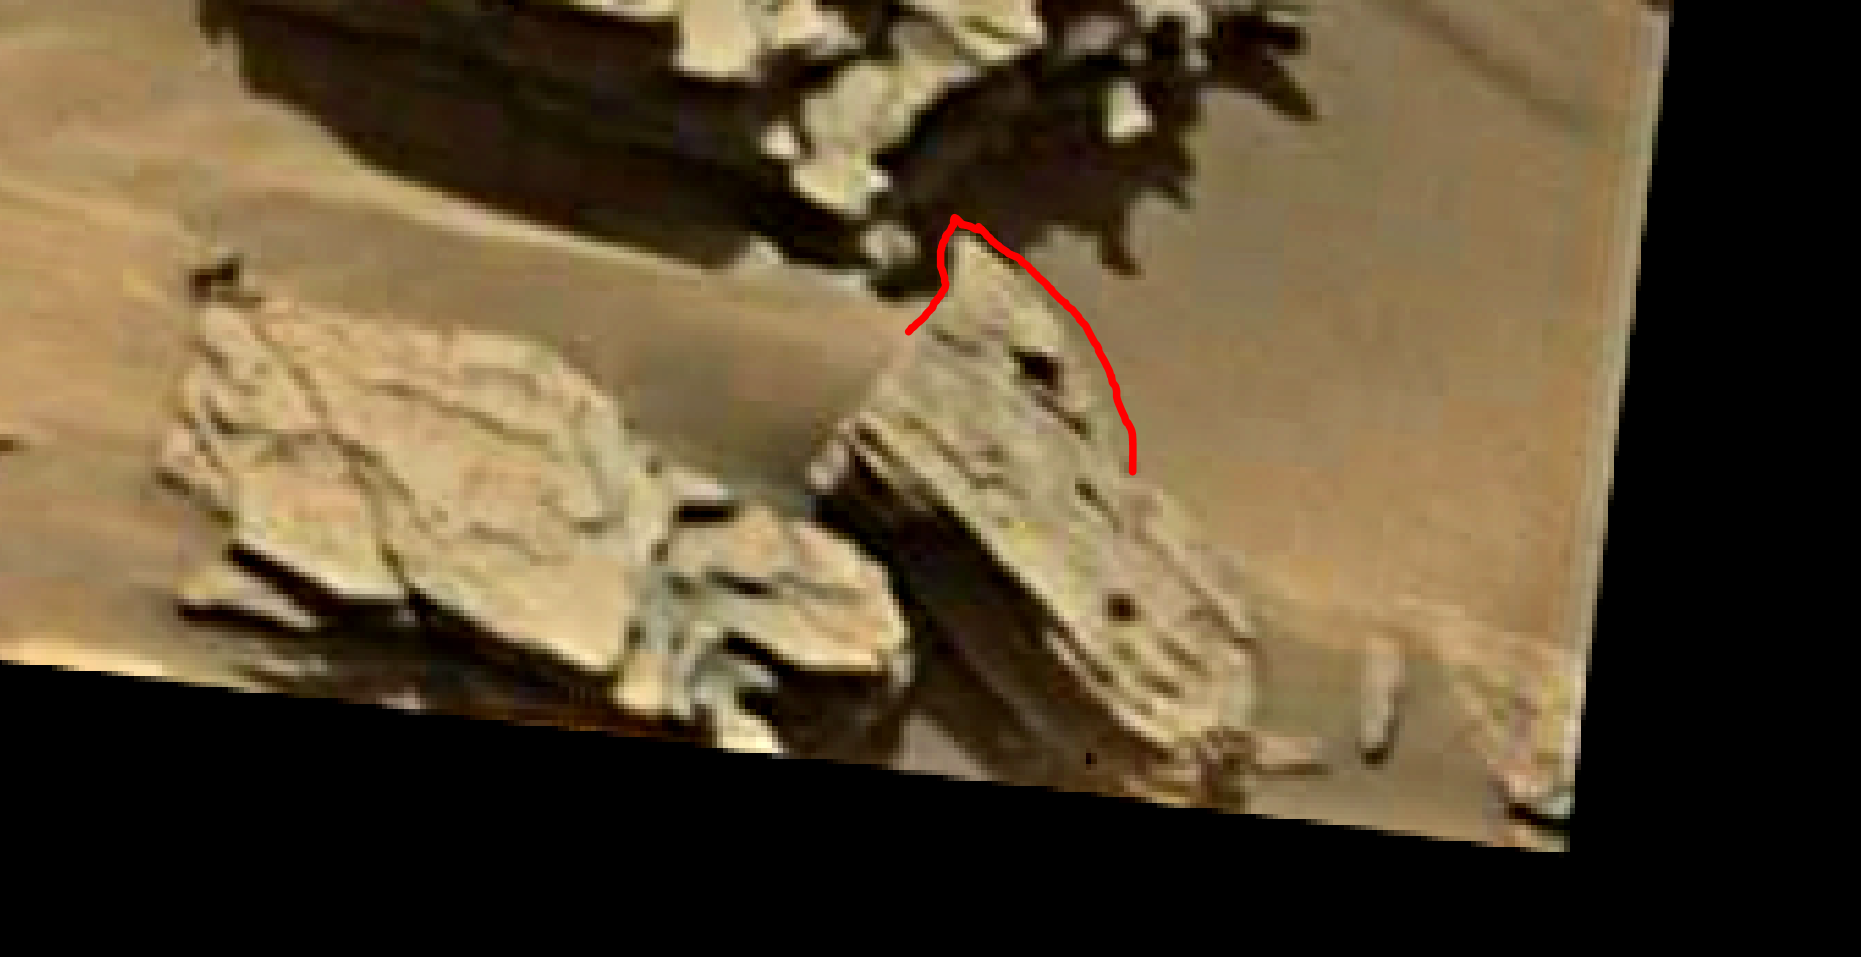 mars sol 1346 anomaly-artifacts 18a was life on mars